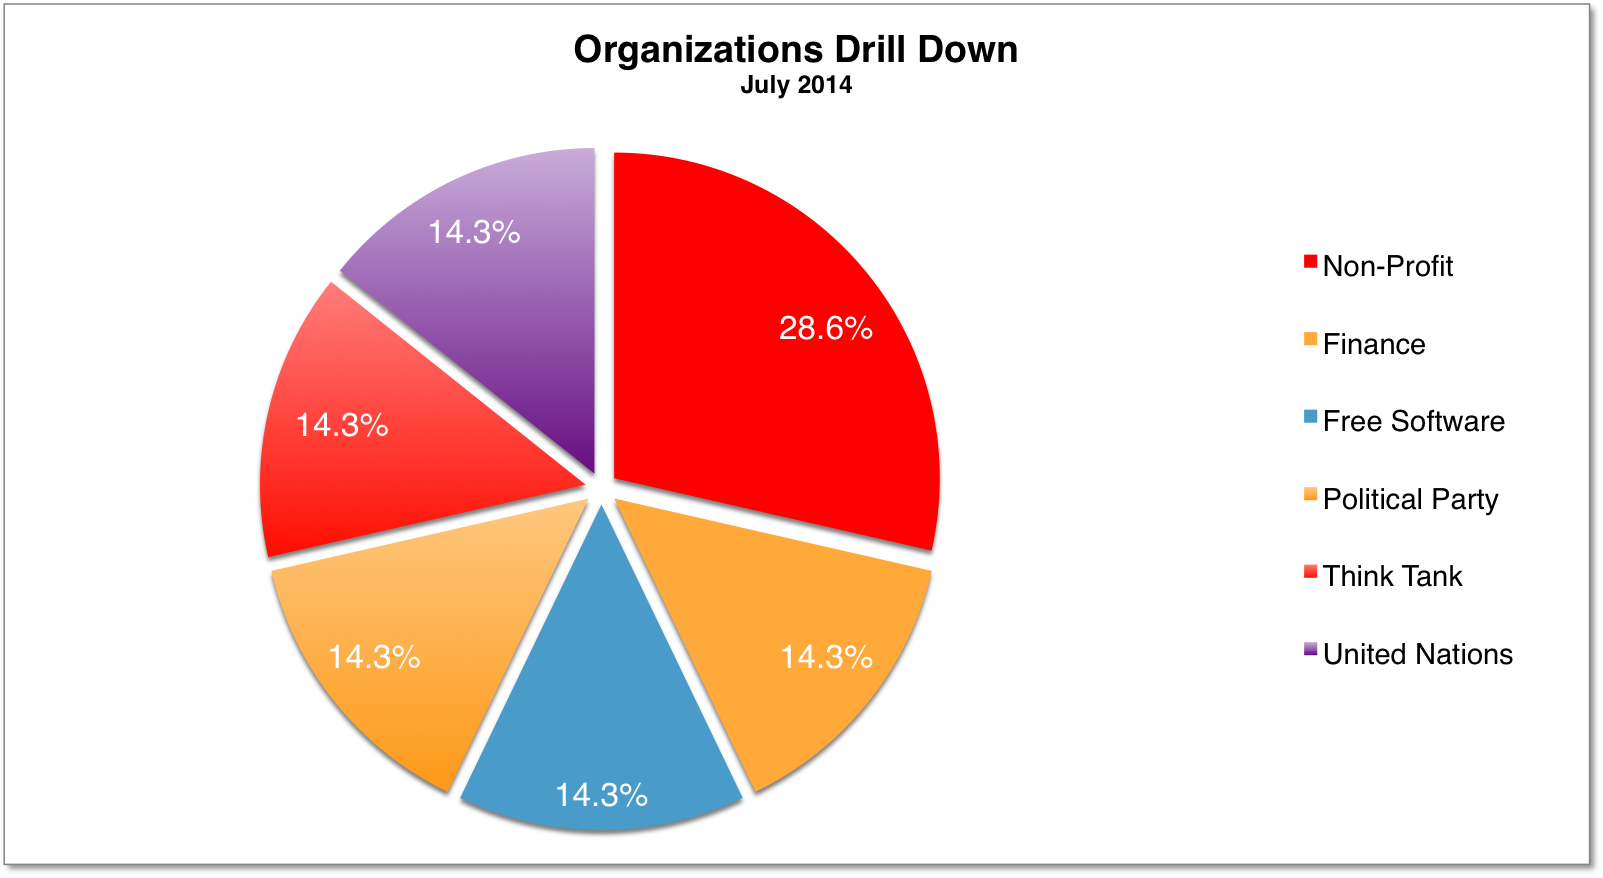 Org Drilldown July 2014